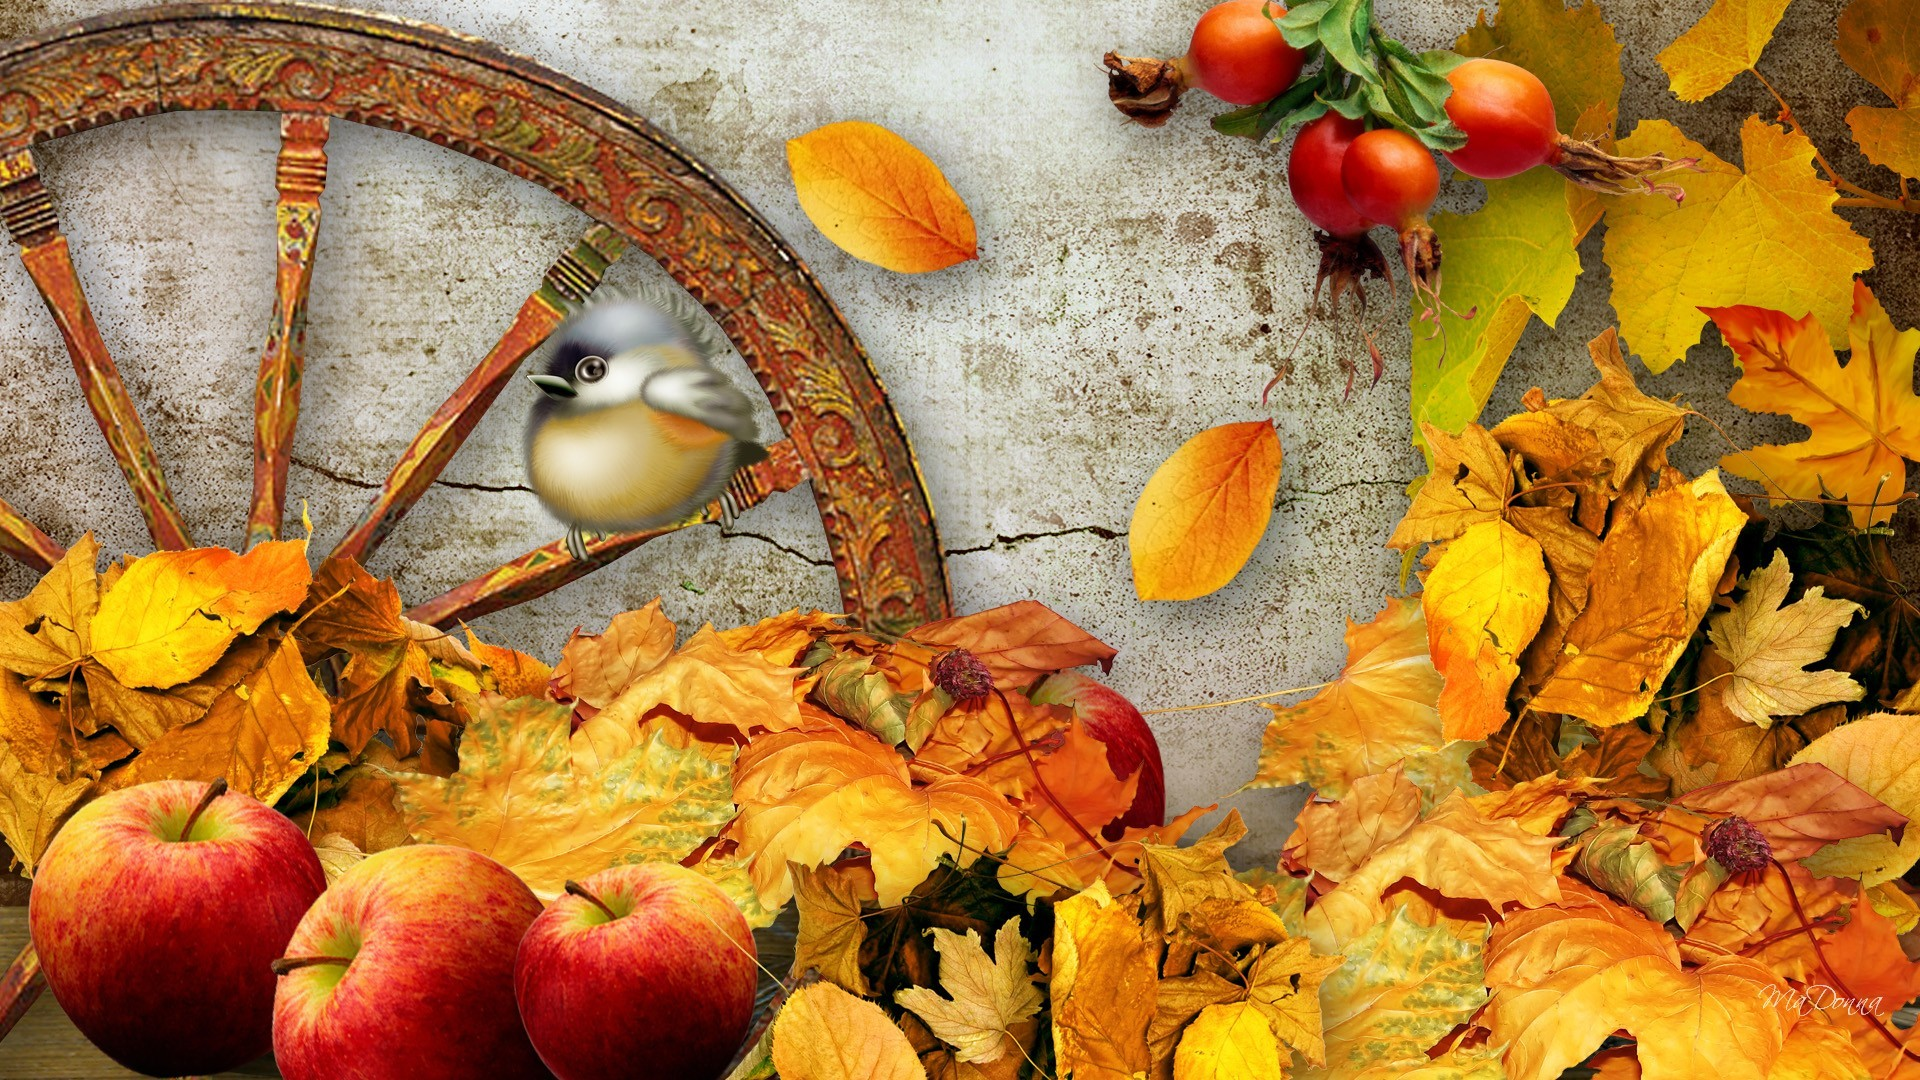 Fall Desktop Wallpaper Pinterest Precious Moments Thanksgiving Wallpaper 42 Images